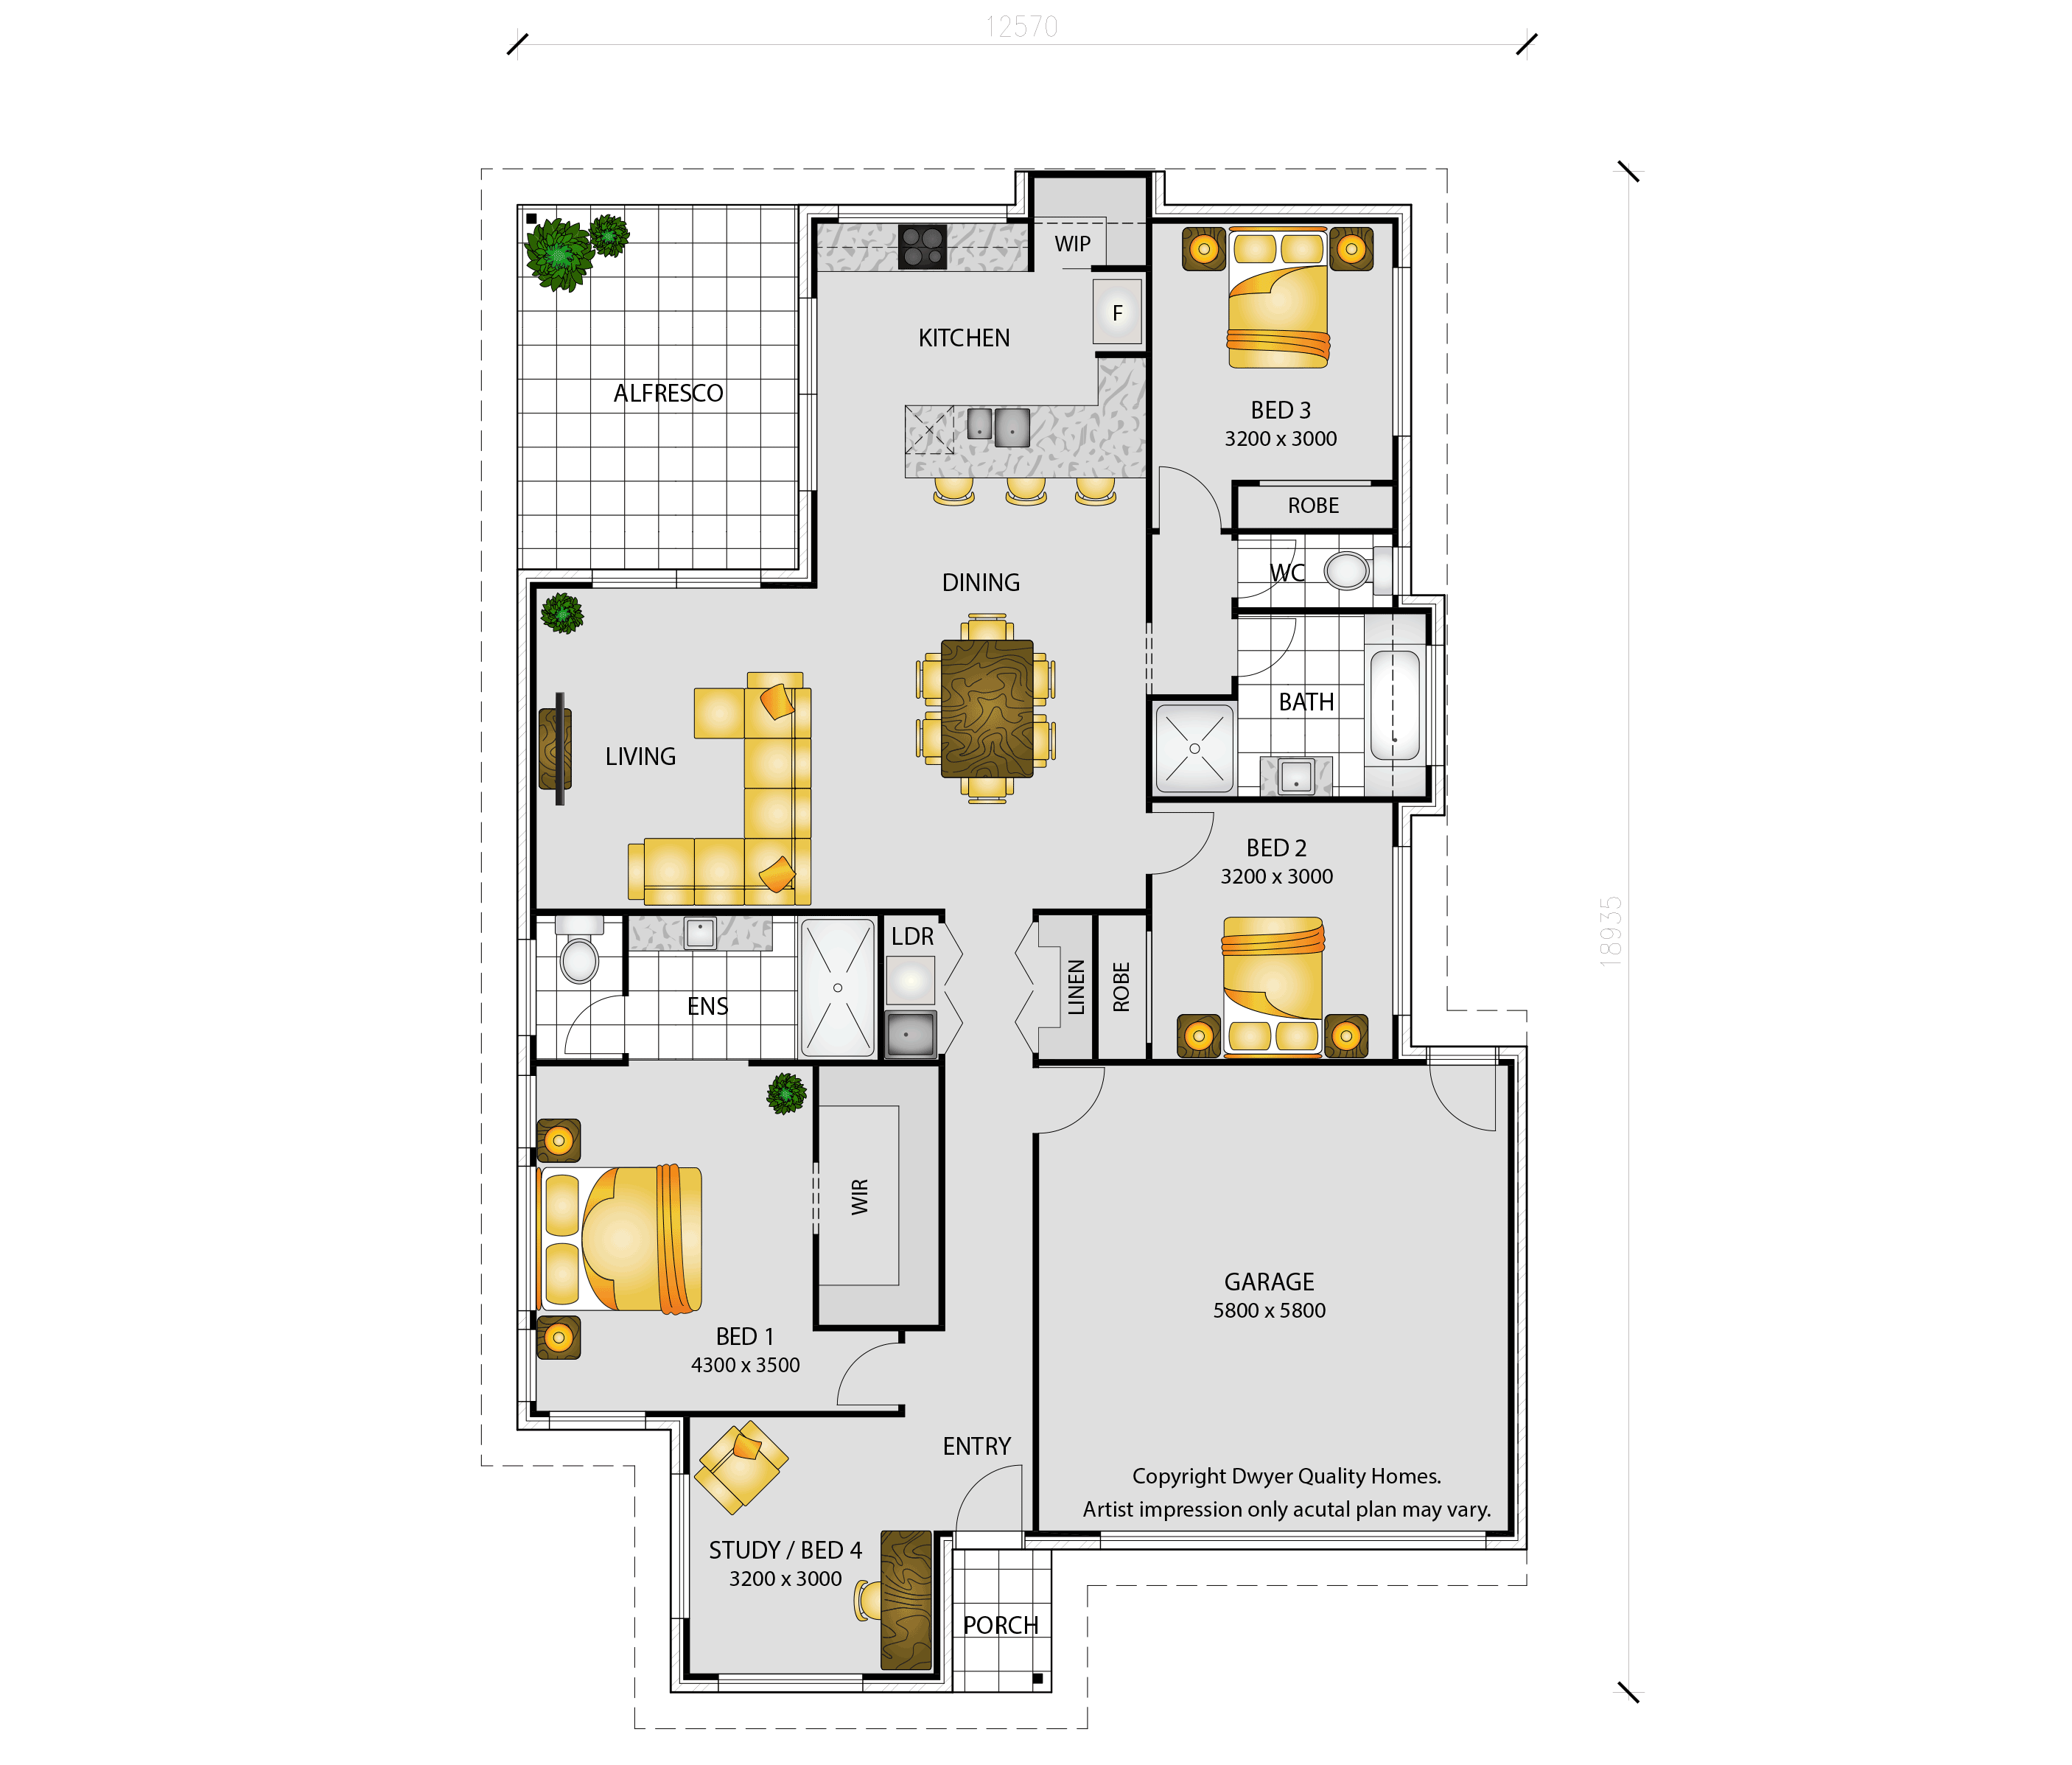 Breeze - Floorplans